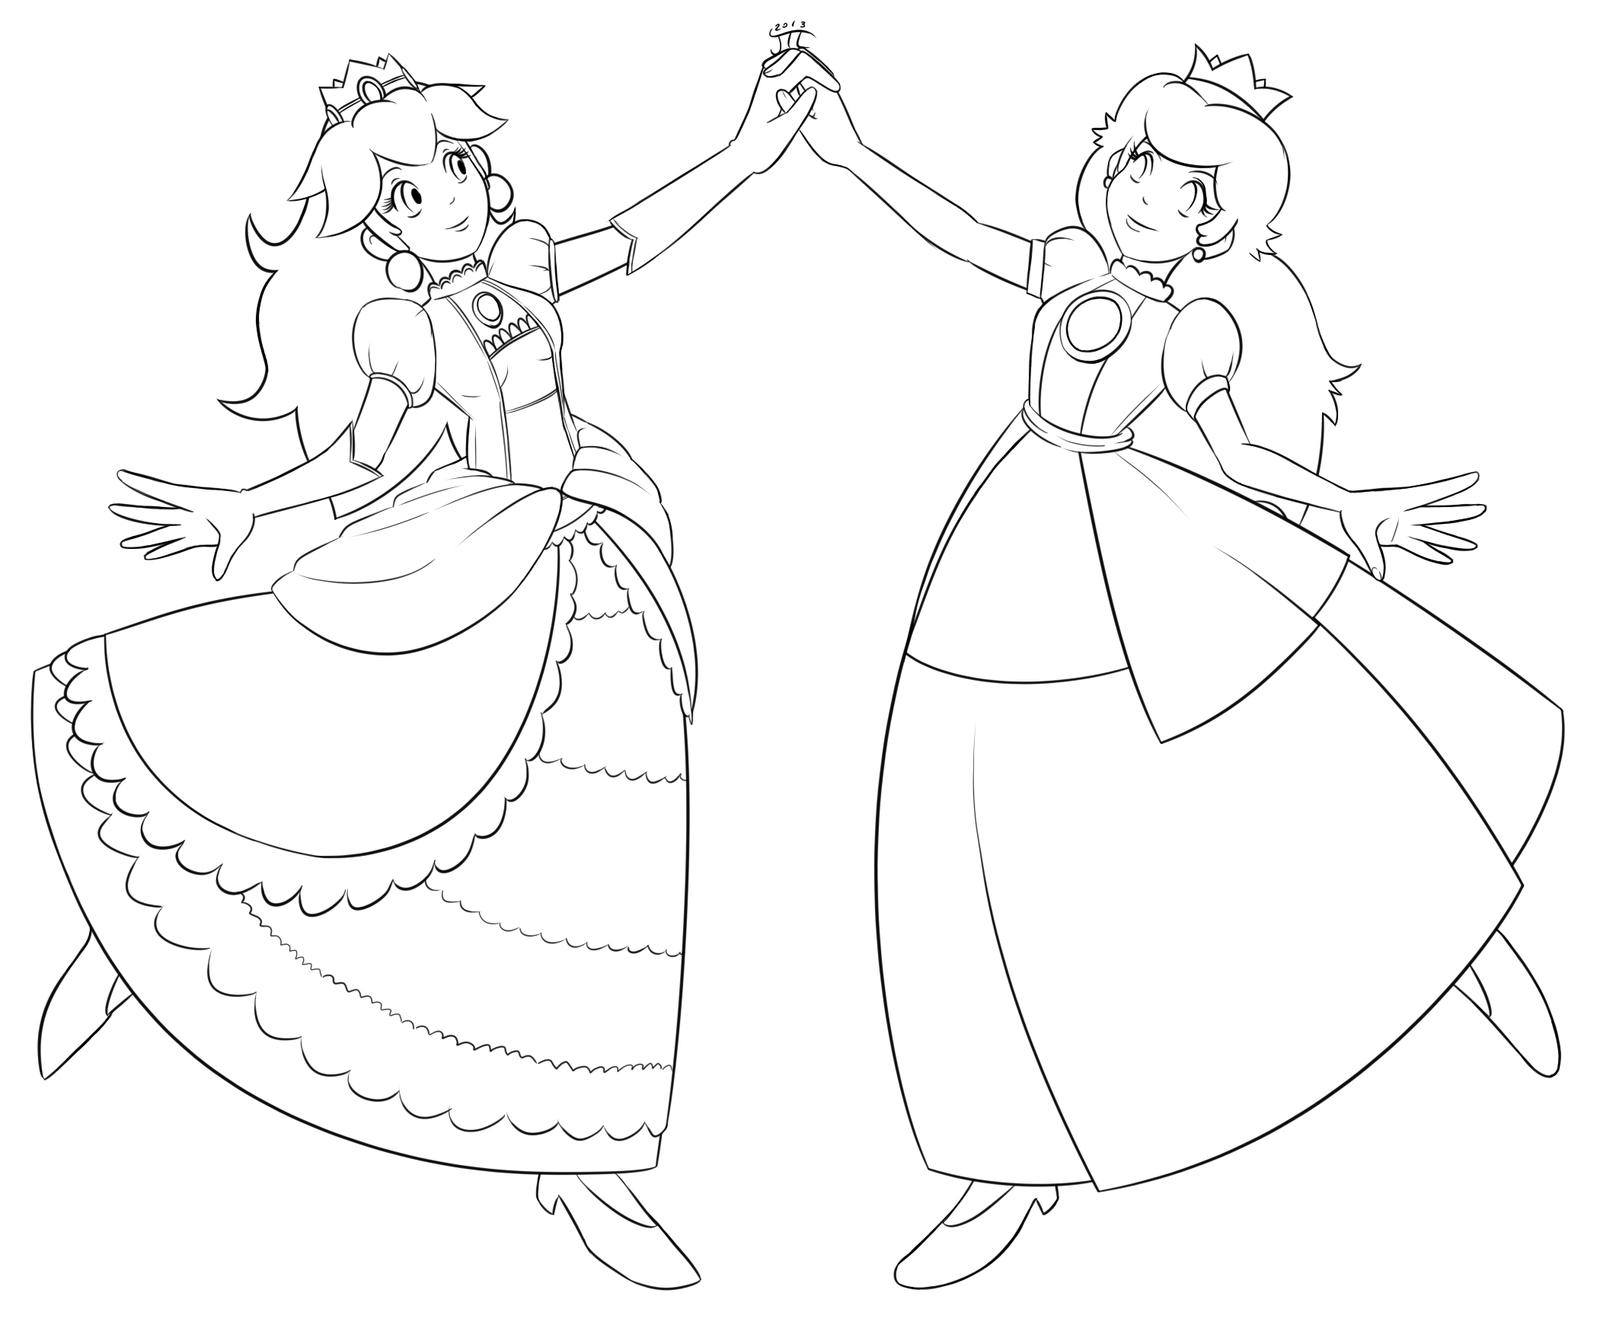 Mario princess peach toadstool ver 1 lineart by for Super mario princess peach coloring pages